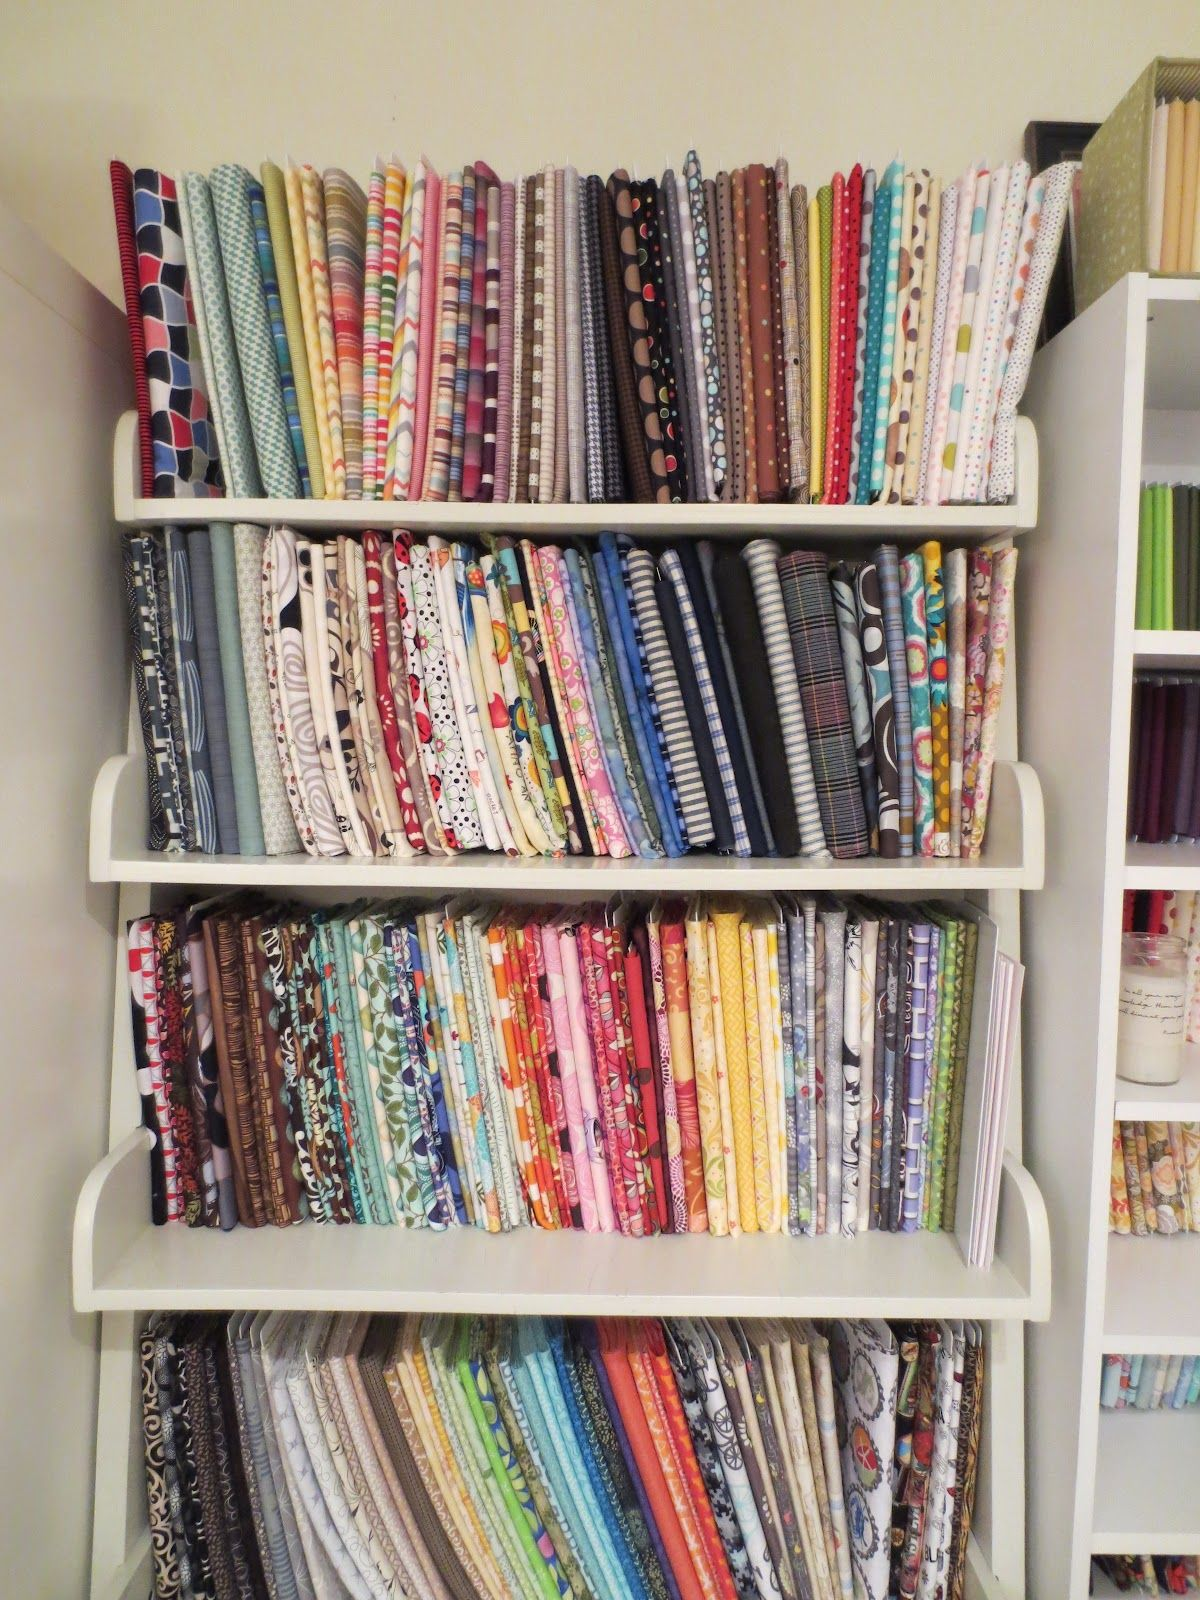 Uncategorized The Fabric Organizer using comic book boards to neatly organize fabric on shelves i love the filing cabinet idea lol ideas for organizing from cottage mama and file folders